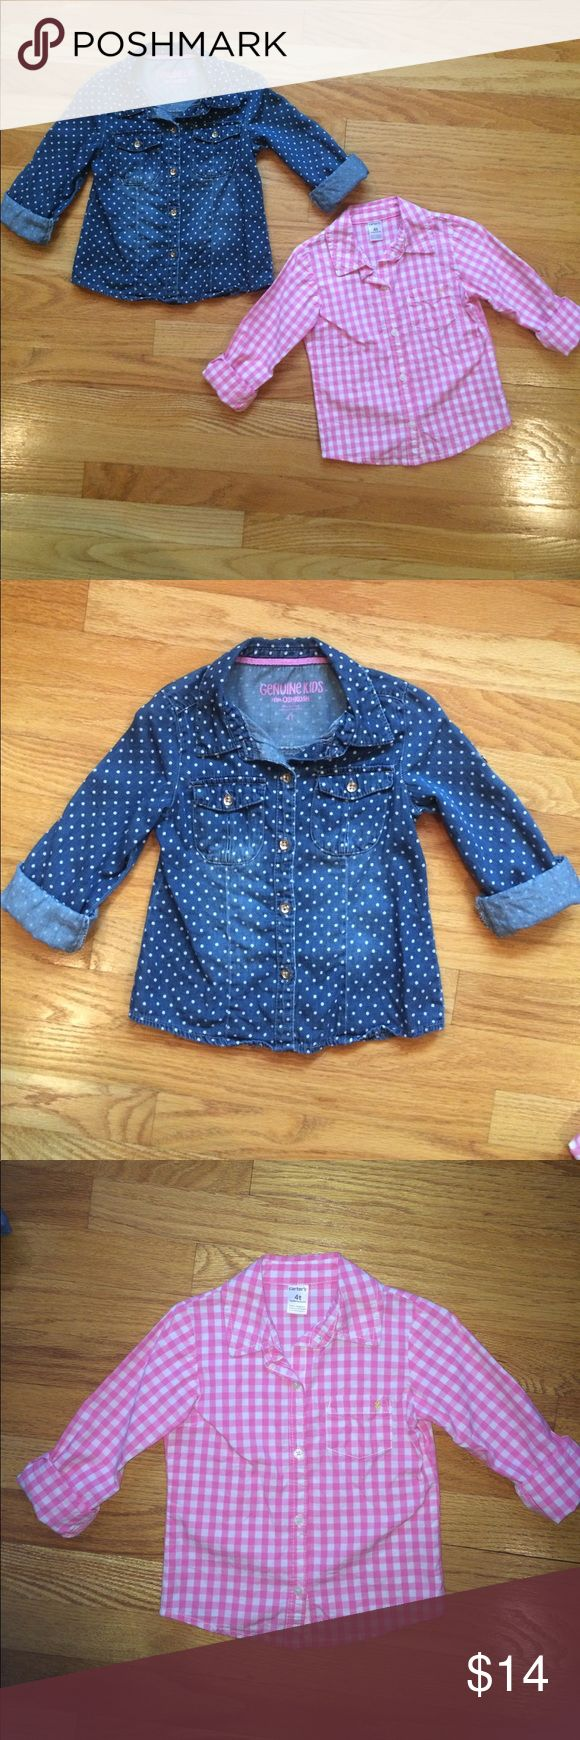 Girls Size 4T Button Up Shirts Carter's Oshkosh 2 Girls Button Up Shirts.  Size 4T.  Pink/White Checkered Shirt is Carter's.  Blue Denim Polka Dot Shirt is Genuine Kids from Oshkosh.  Both Shirts have 3/4 Length Sleeves.  Both Shirts are in Great Condition! Carter's Shirts & Tops Button Down Shirts